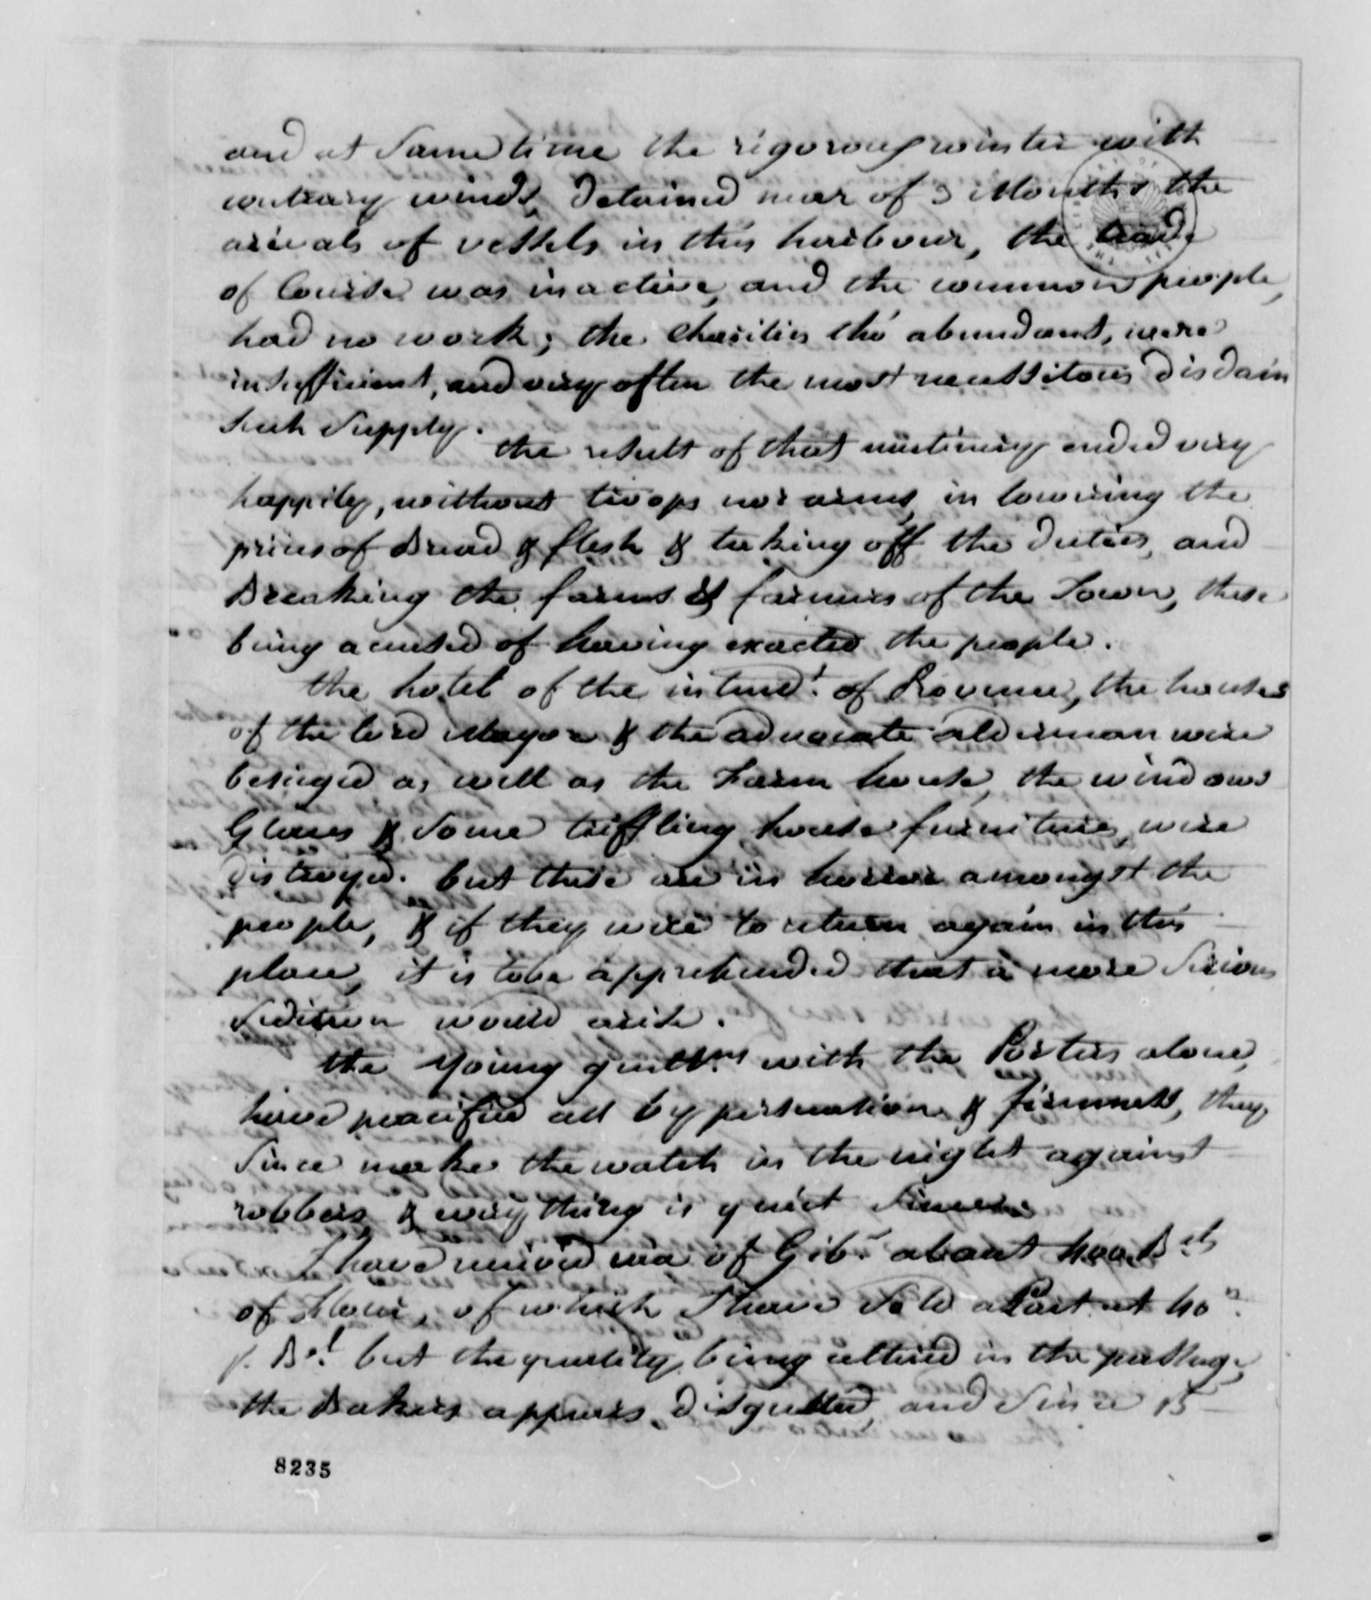 Stephen Cathalan, Jr. to Thomas Jefferson, April 12, 1789, with Account